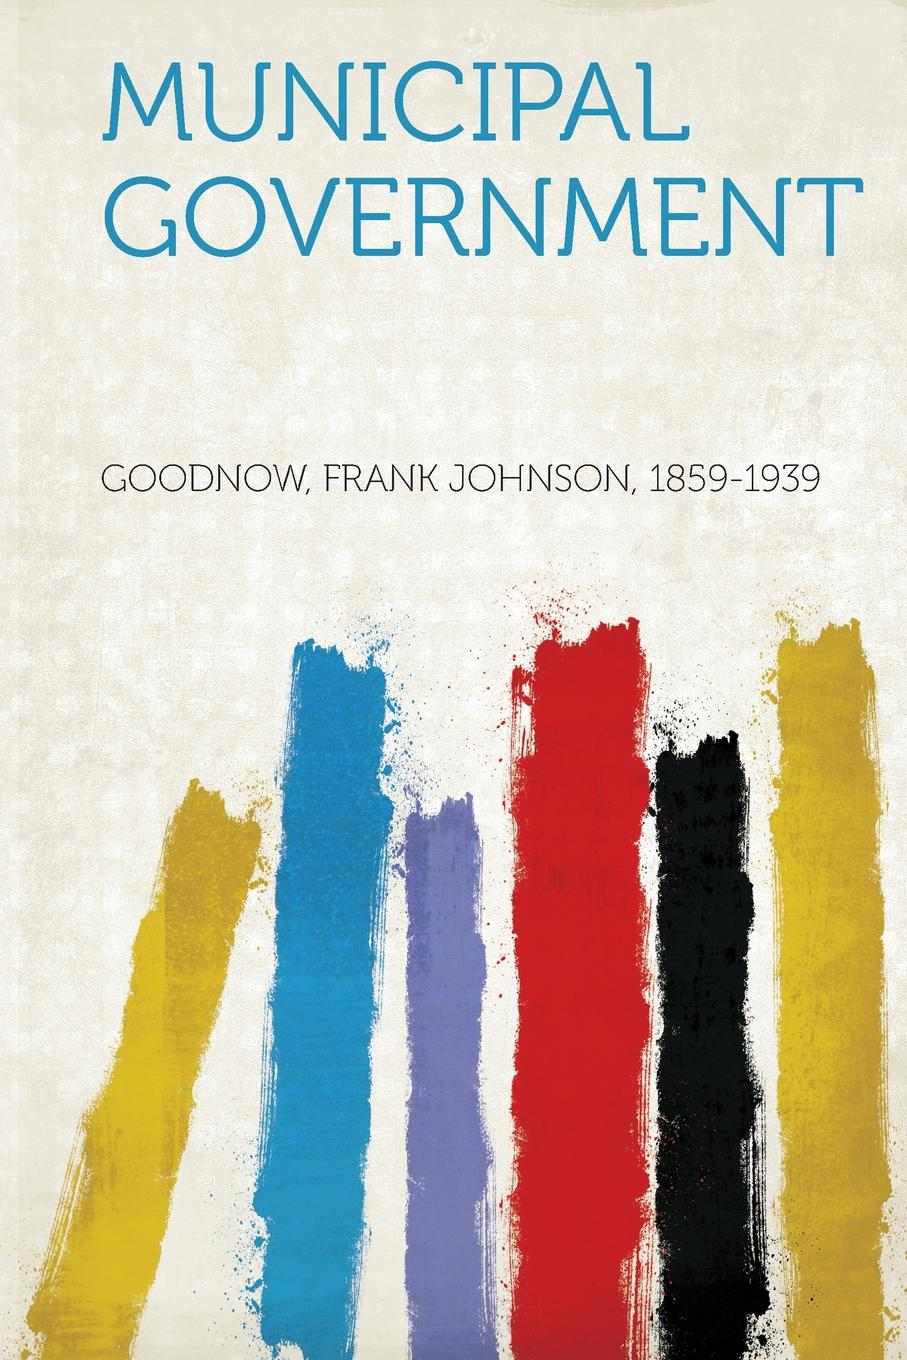 Goodnow Frank Johnson 1859-1939 Municipal Government